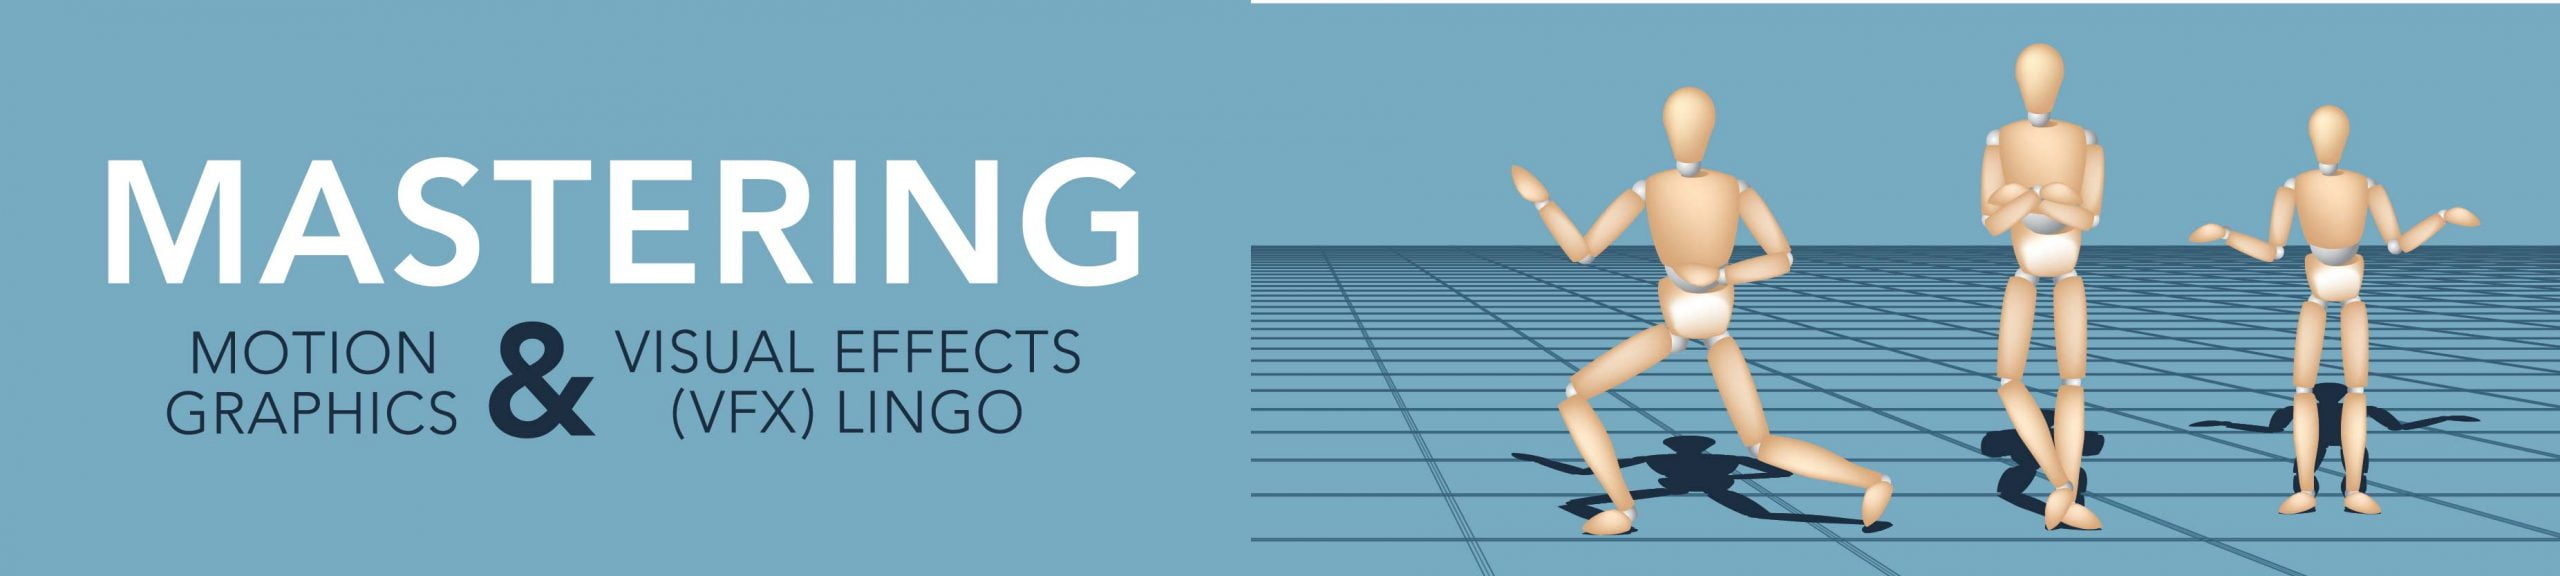 Mastering Motion Graphics and Visual Effects (VFX) Lingo